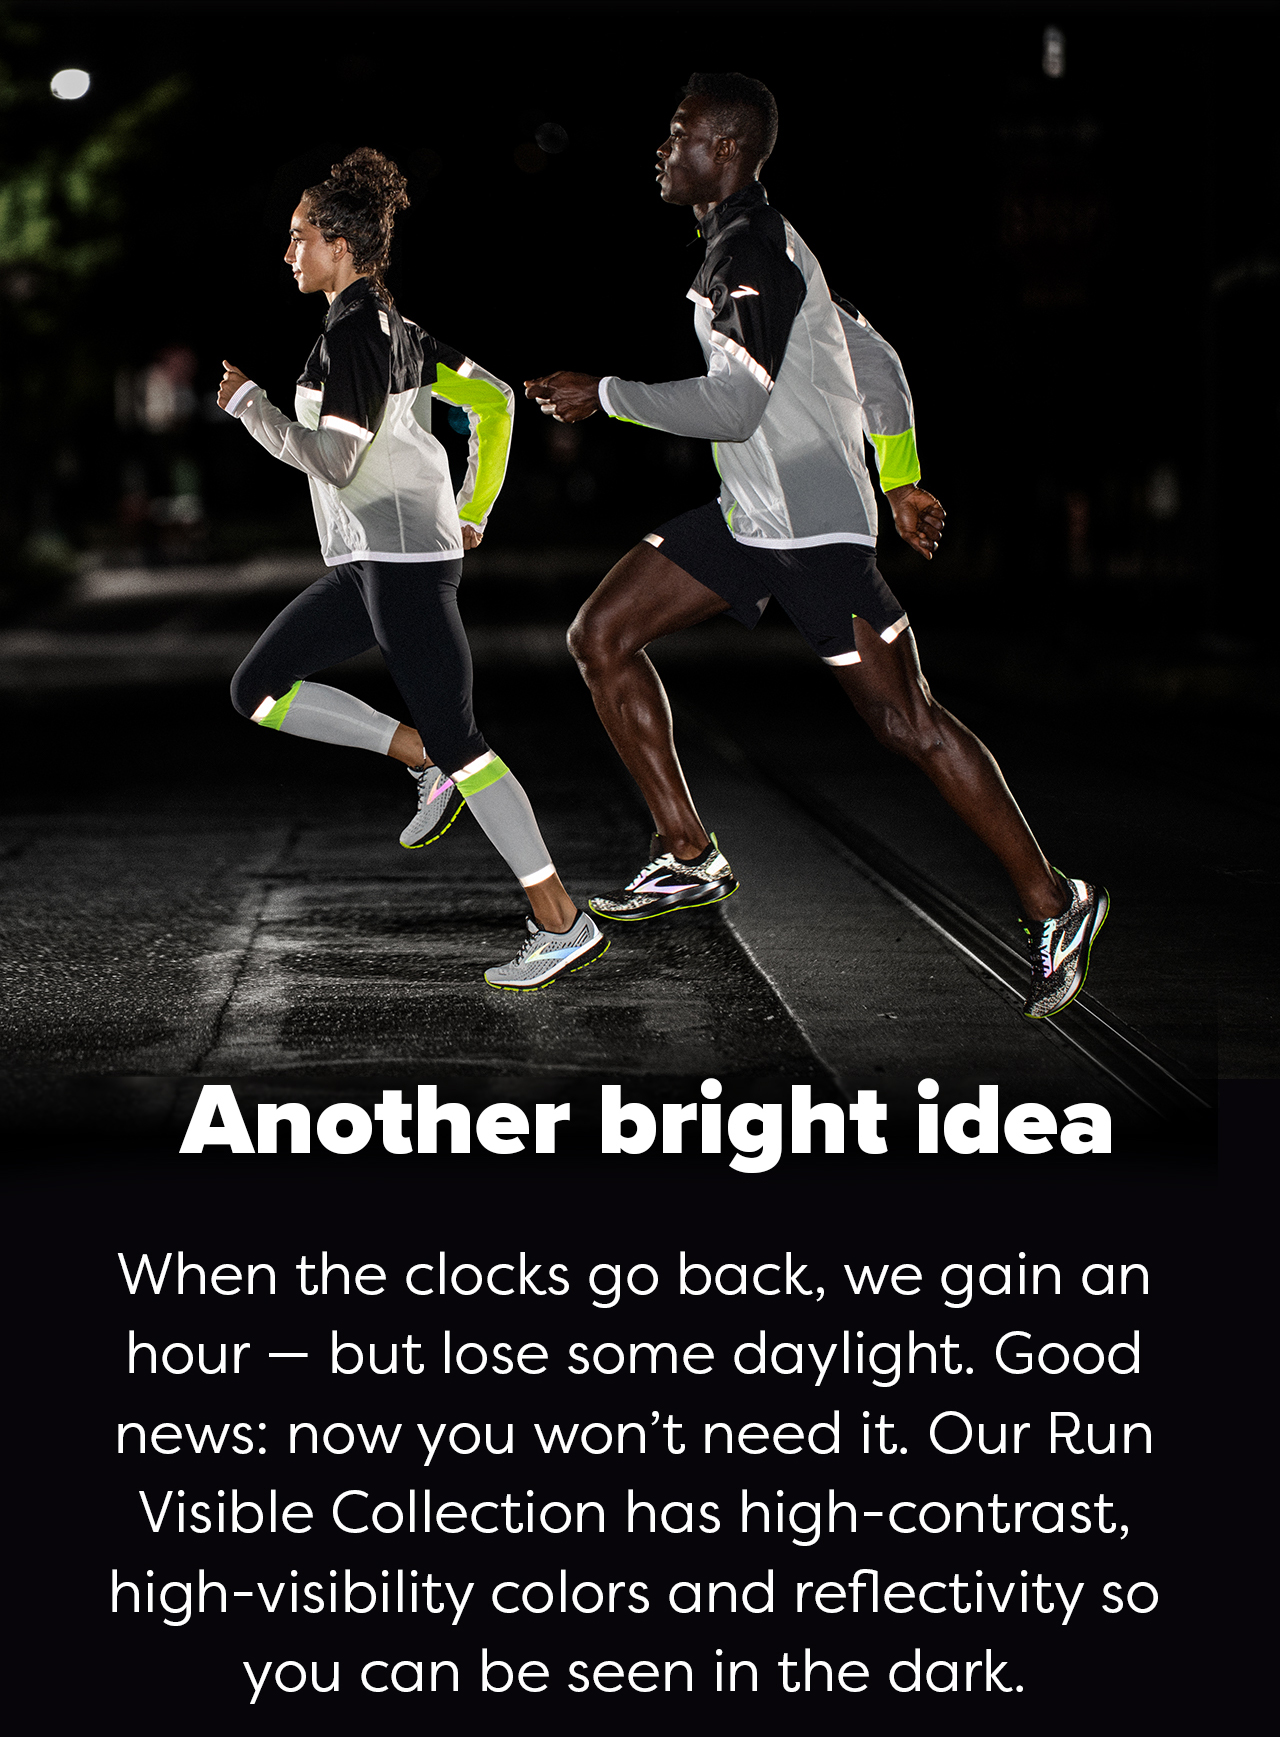 Another bright idea   When the clocks go back, we gain an hour - but lose some daylight. Good news: now you won''t need it. Our Run Visible Collection has high-contrast, high-visibility colors and reflectivity so you can be seen in the dark.